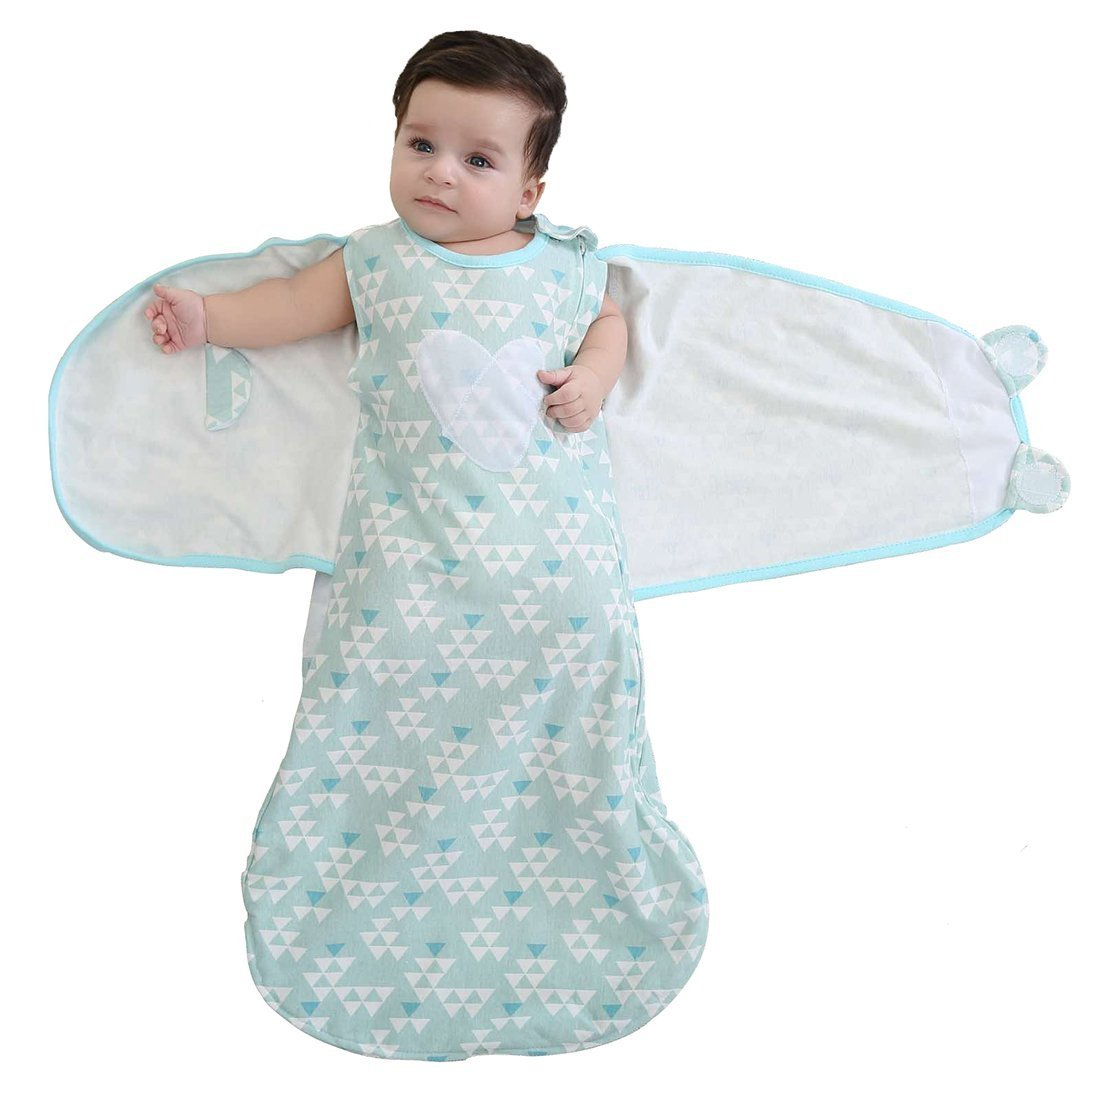 Enrich YLife Baby 100% Cotton Sleeping Bag Swaddle Wearable Blanket for Boys and Girls, 4 Season, 3-12 Months (Green)